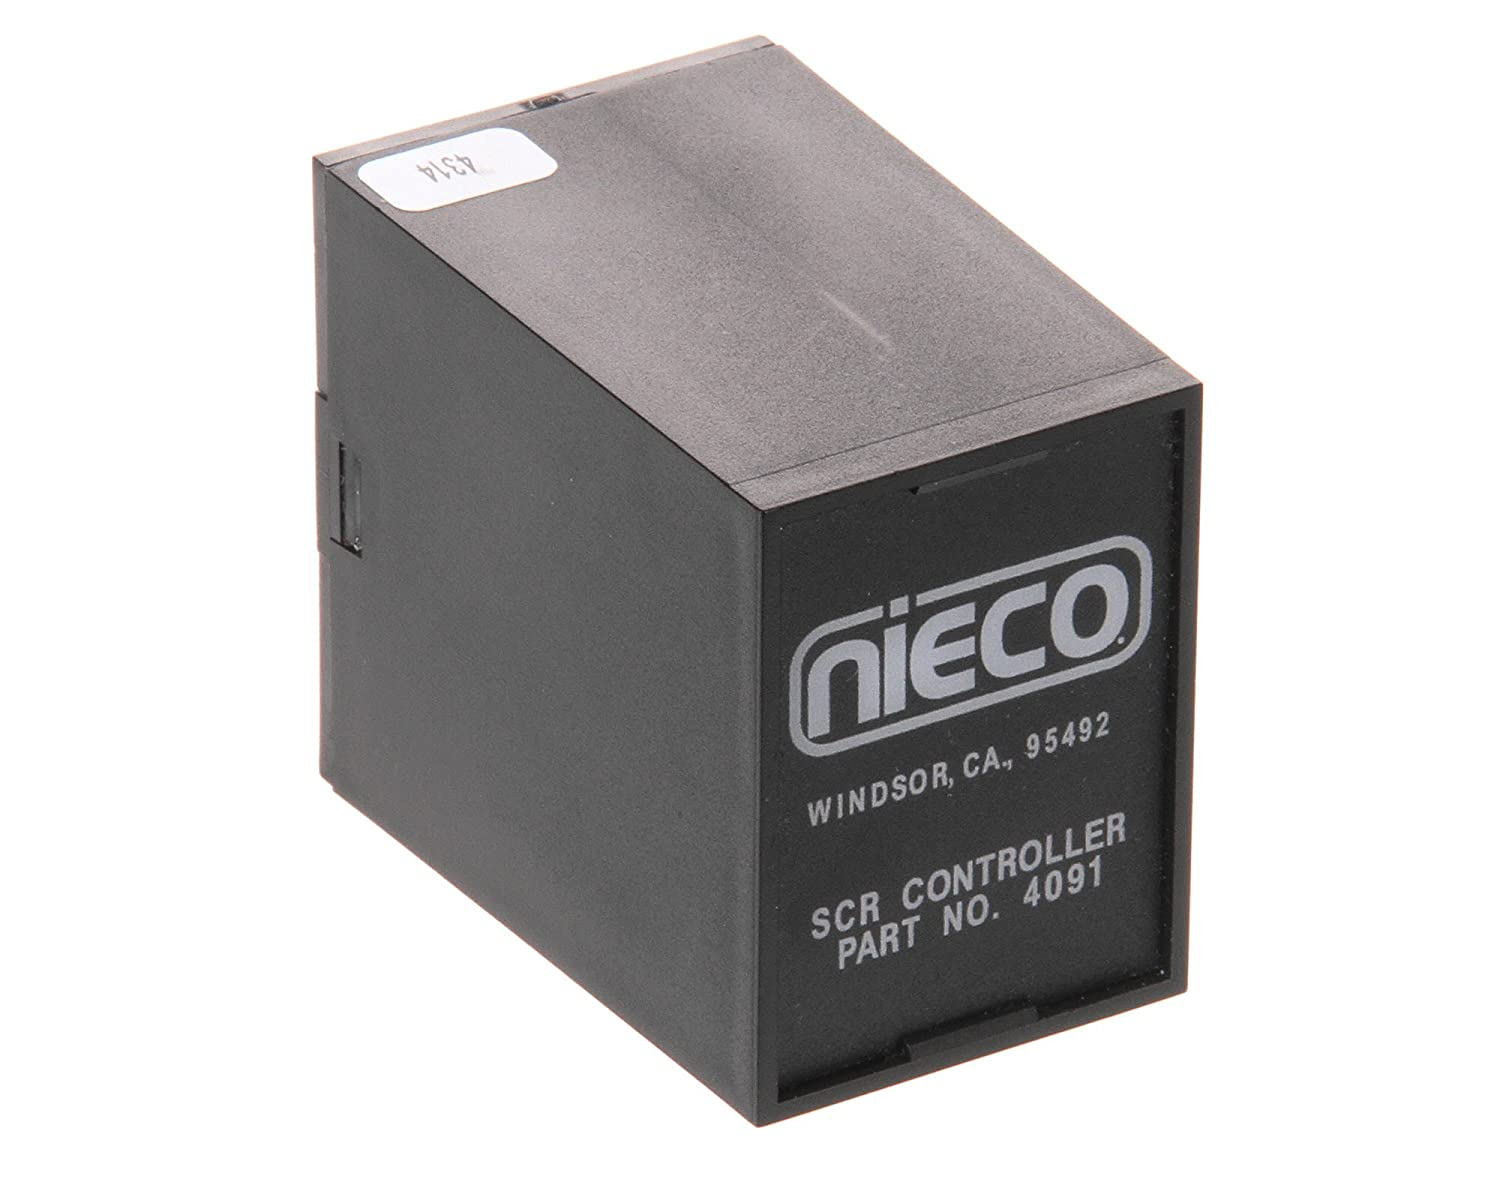 Nieco 4091 220V Control Green Max 84% OFF Oakland Mall Label with